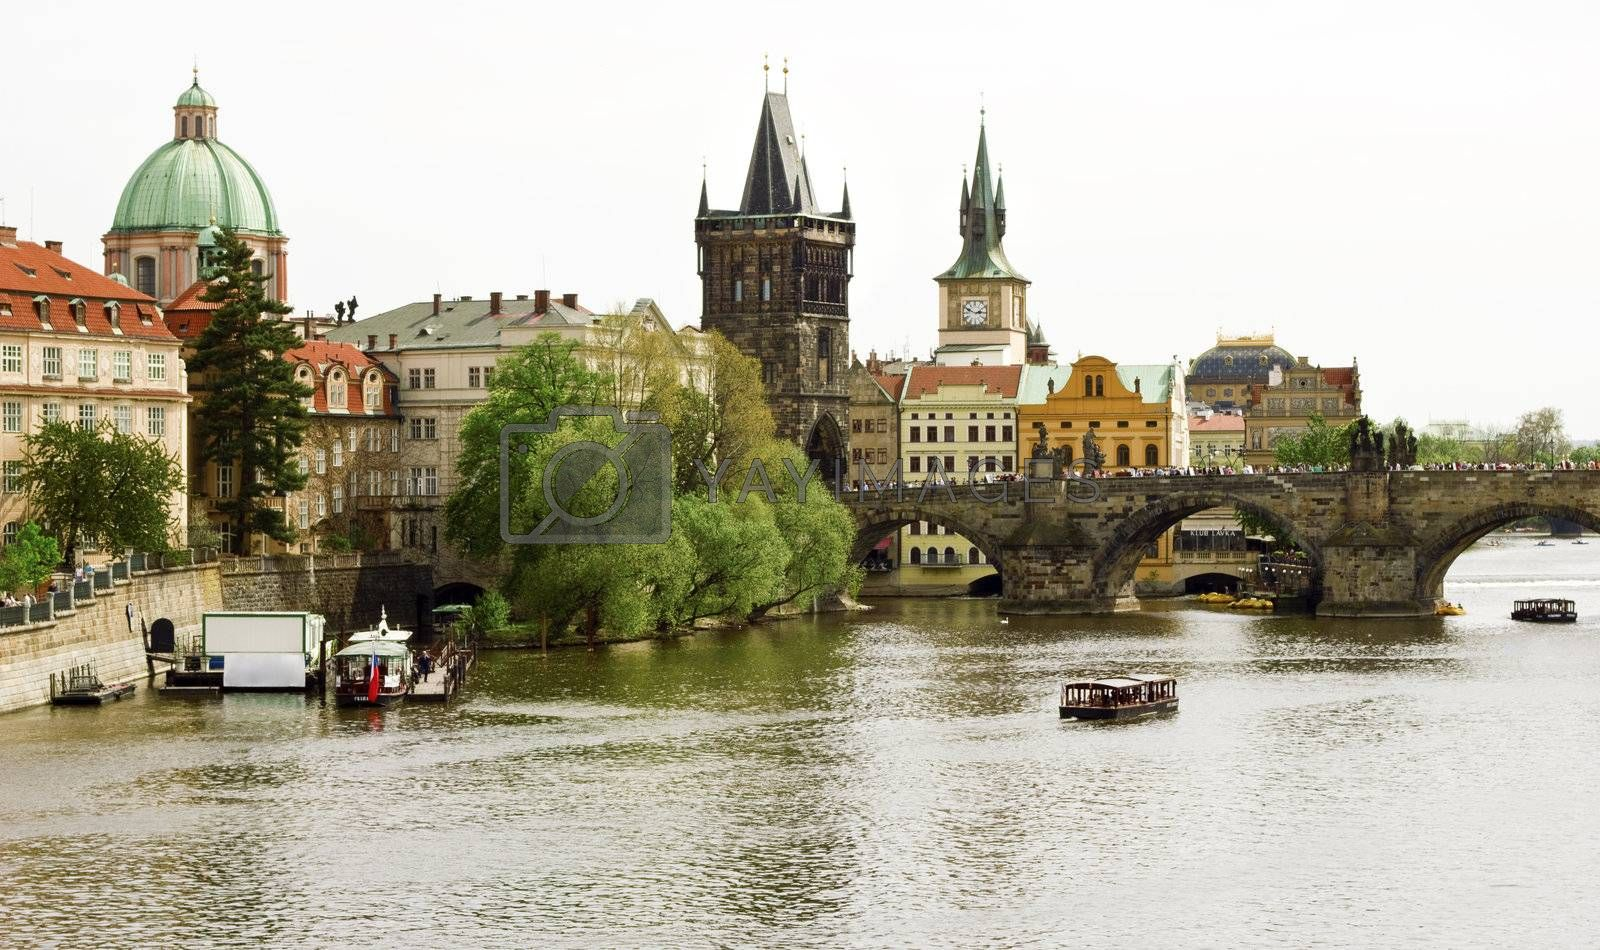 View of an Old town of Prague, the Charles Bridge and the Vltava River. Czech Republic